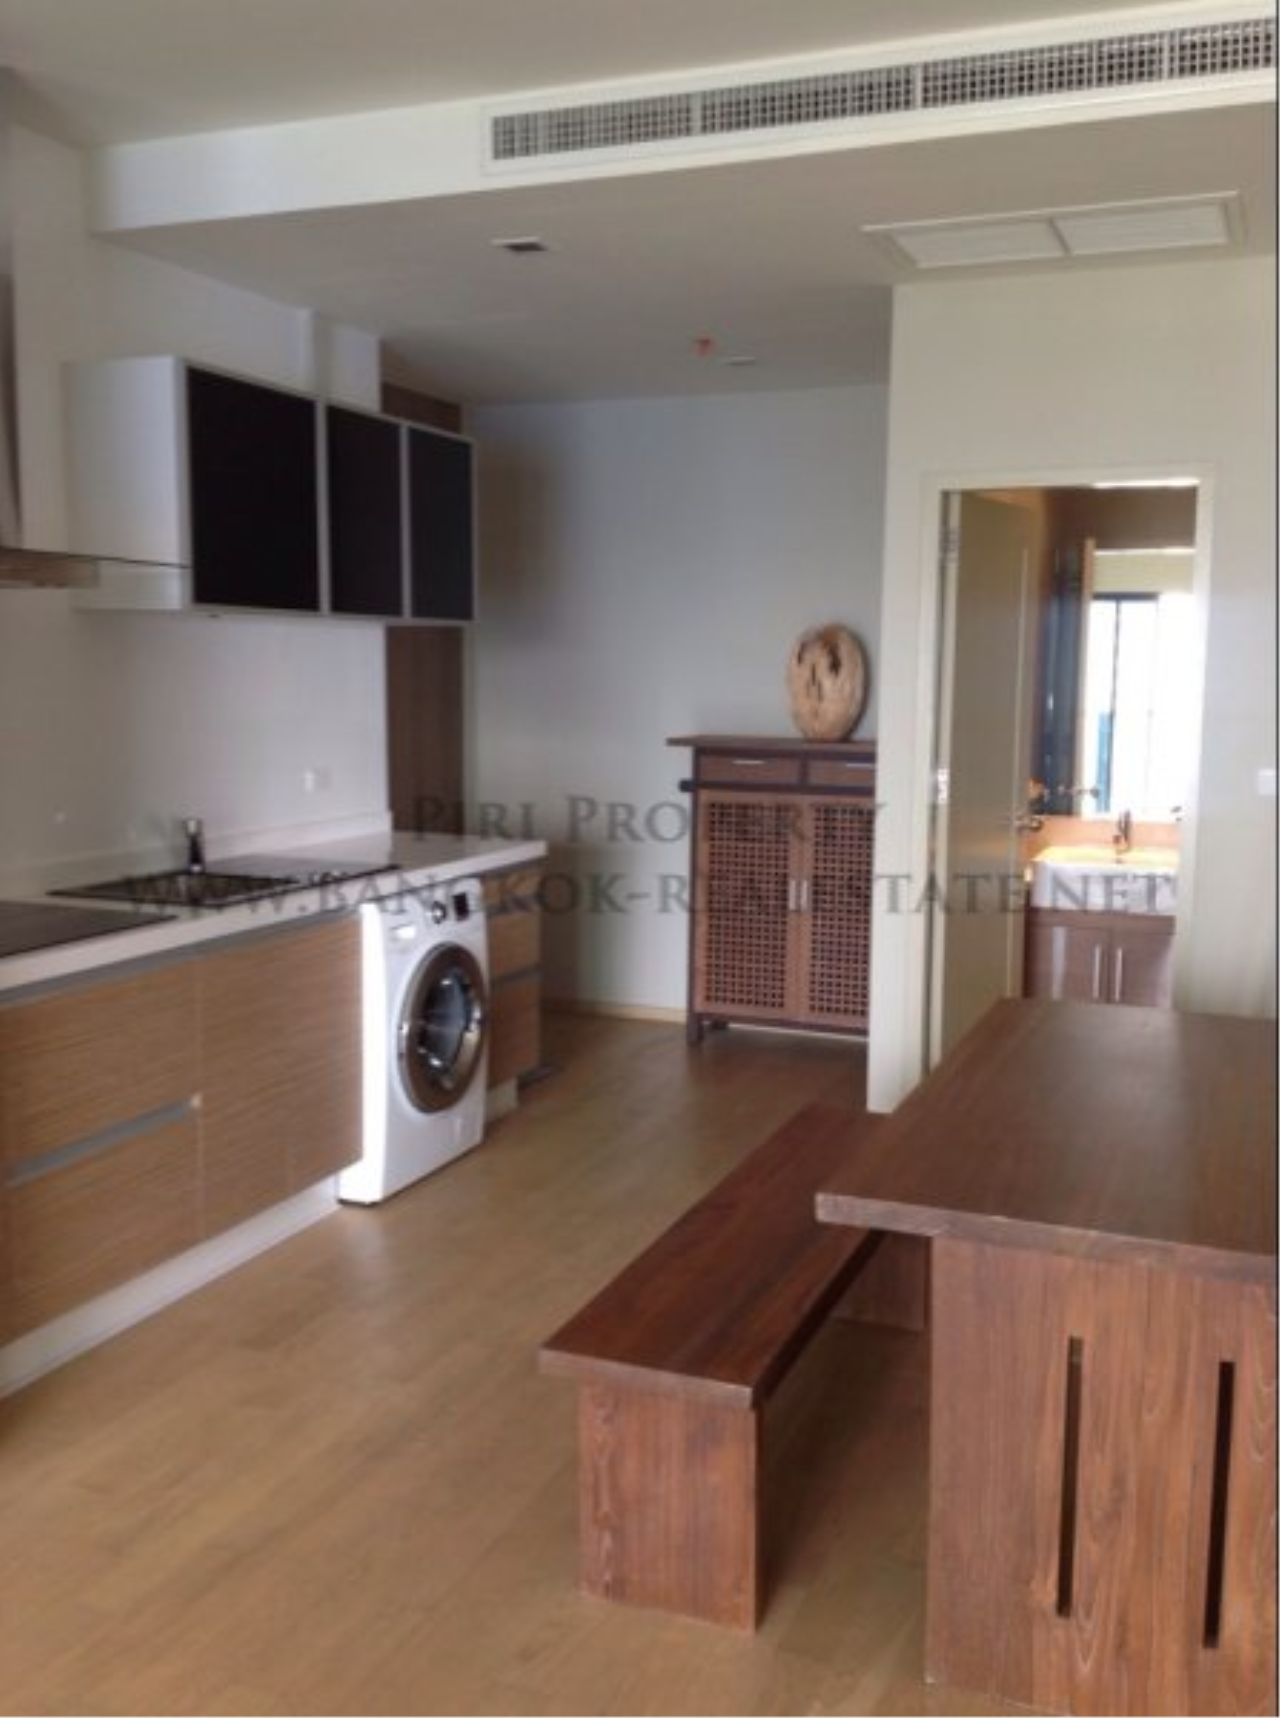 Piri Property Agency's Nicely furnished 2 Bedroom Condo - Noble Reveal - Next to Ekkamai BTS 7